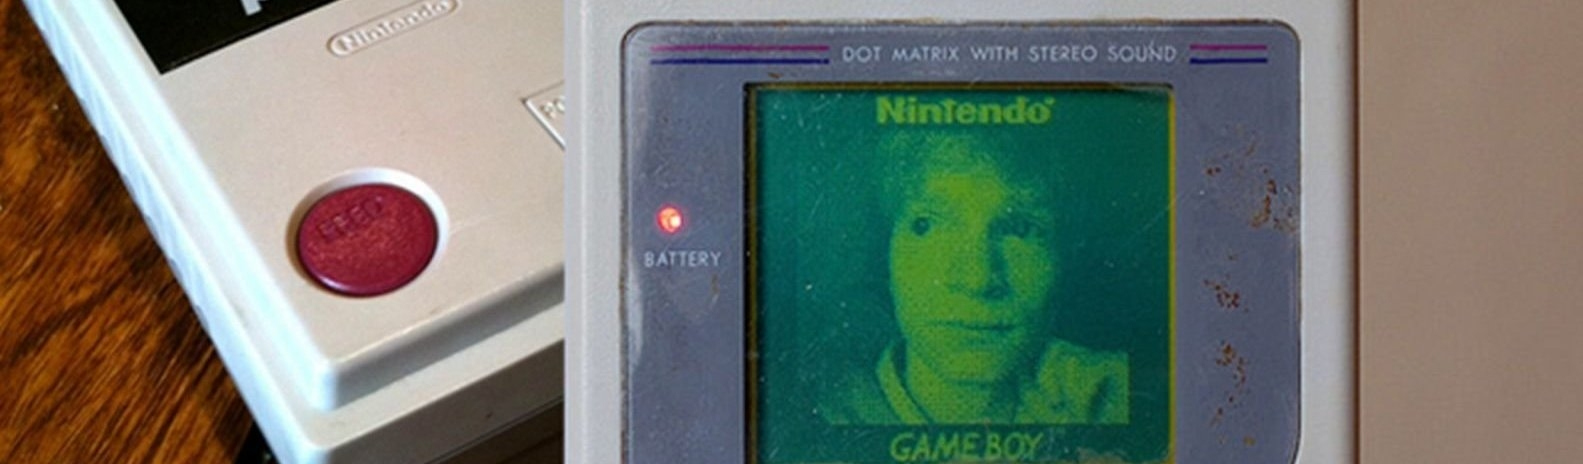 Modojo | This Game Boy Camera Hack Lets You Save Pictures To An SD Card